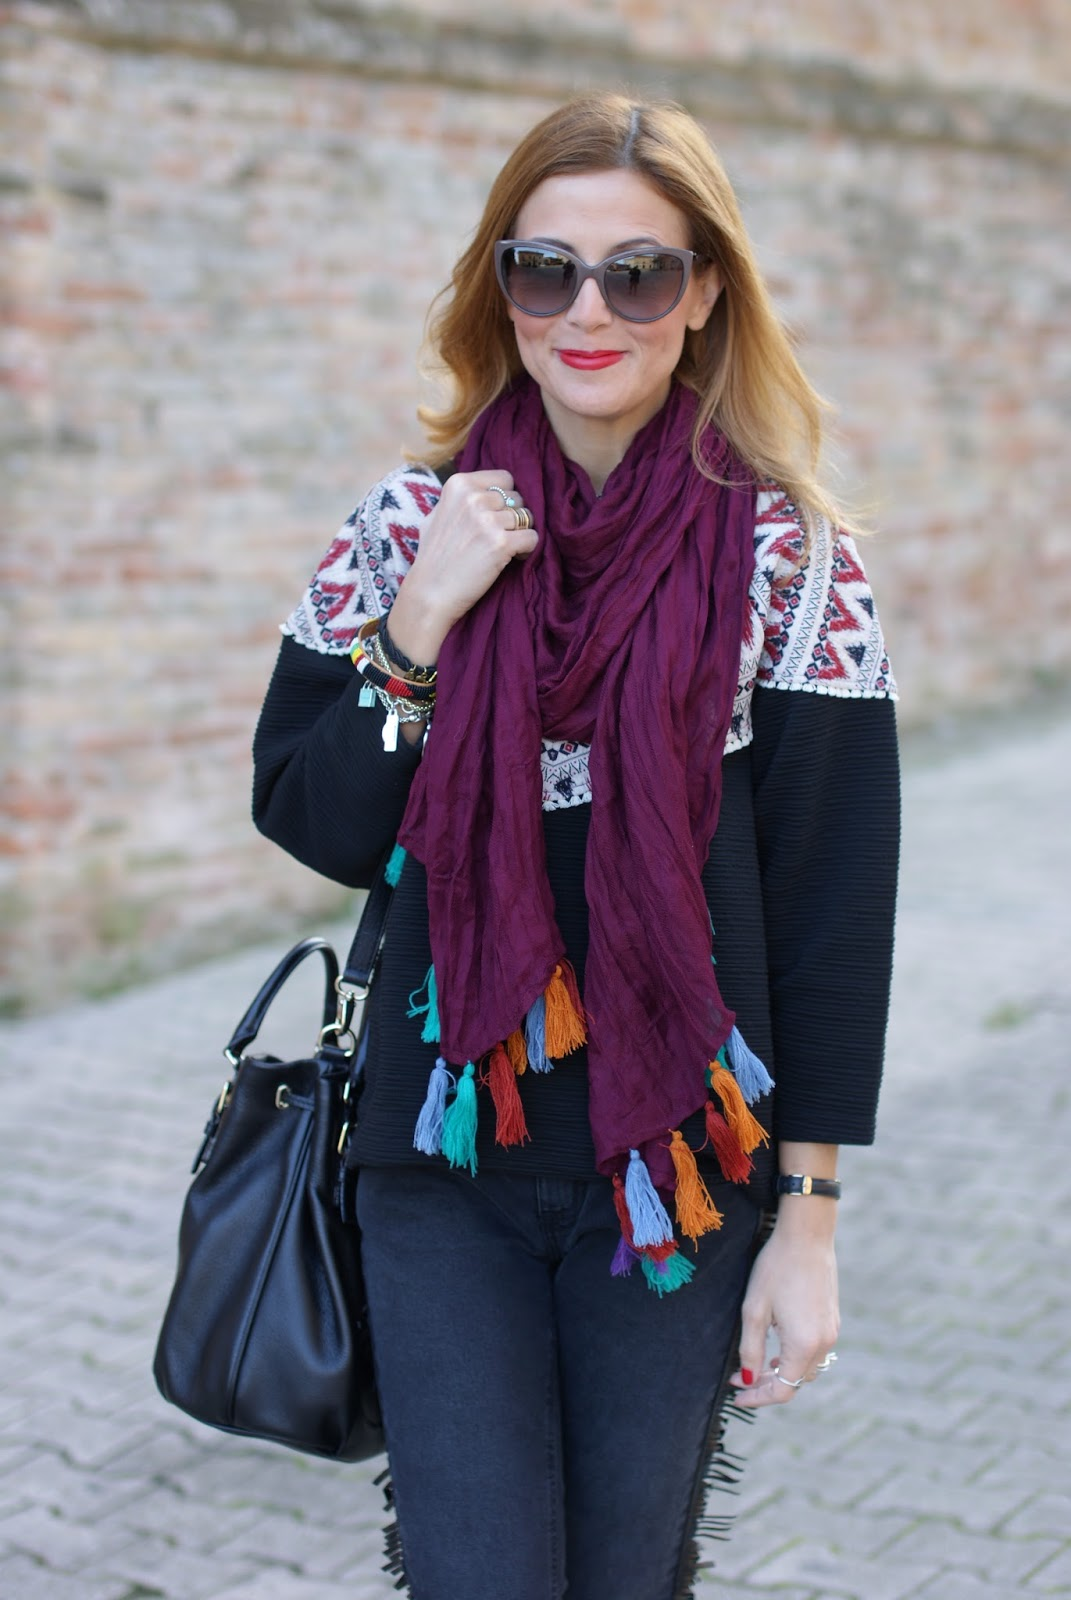 Fringed jeans and tassel scarf for an ethnic chic casual look on Fashion and Cookies fashion blog, fashion blogger style